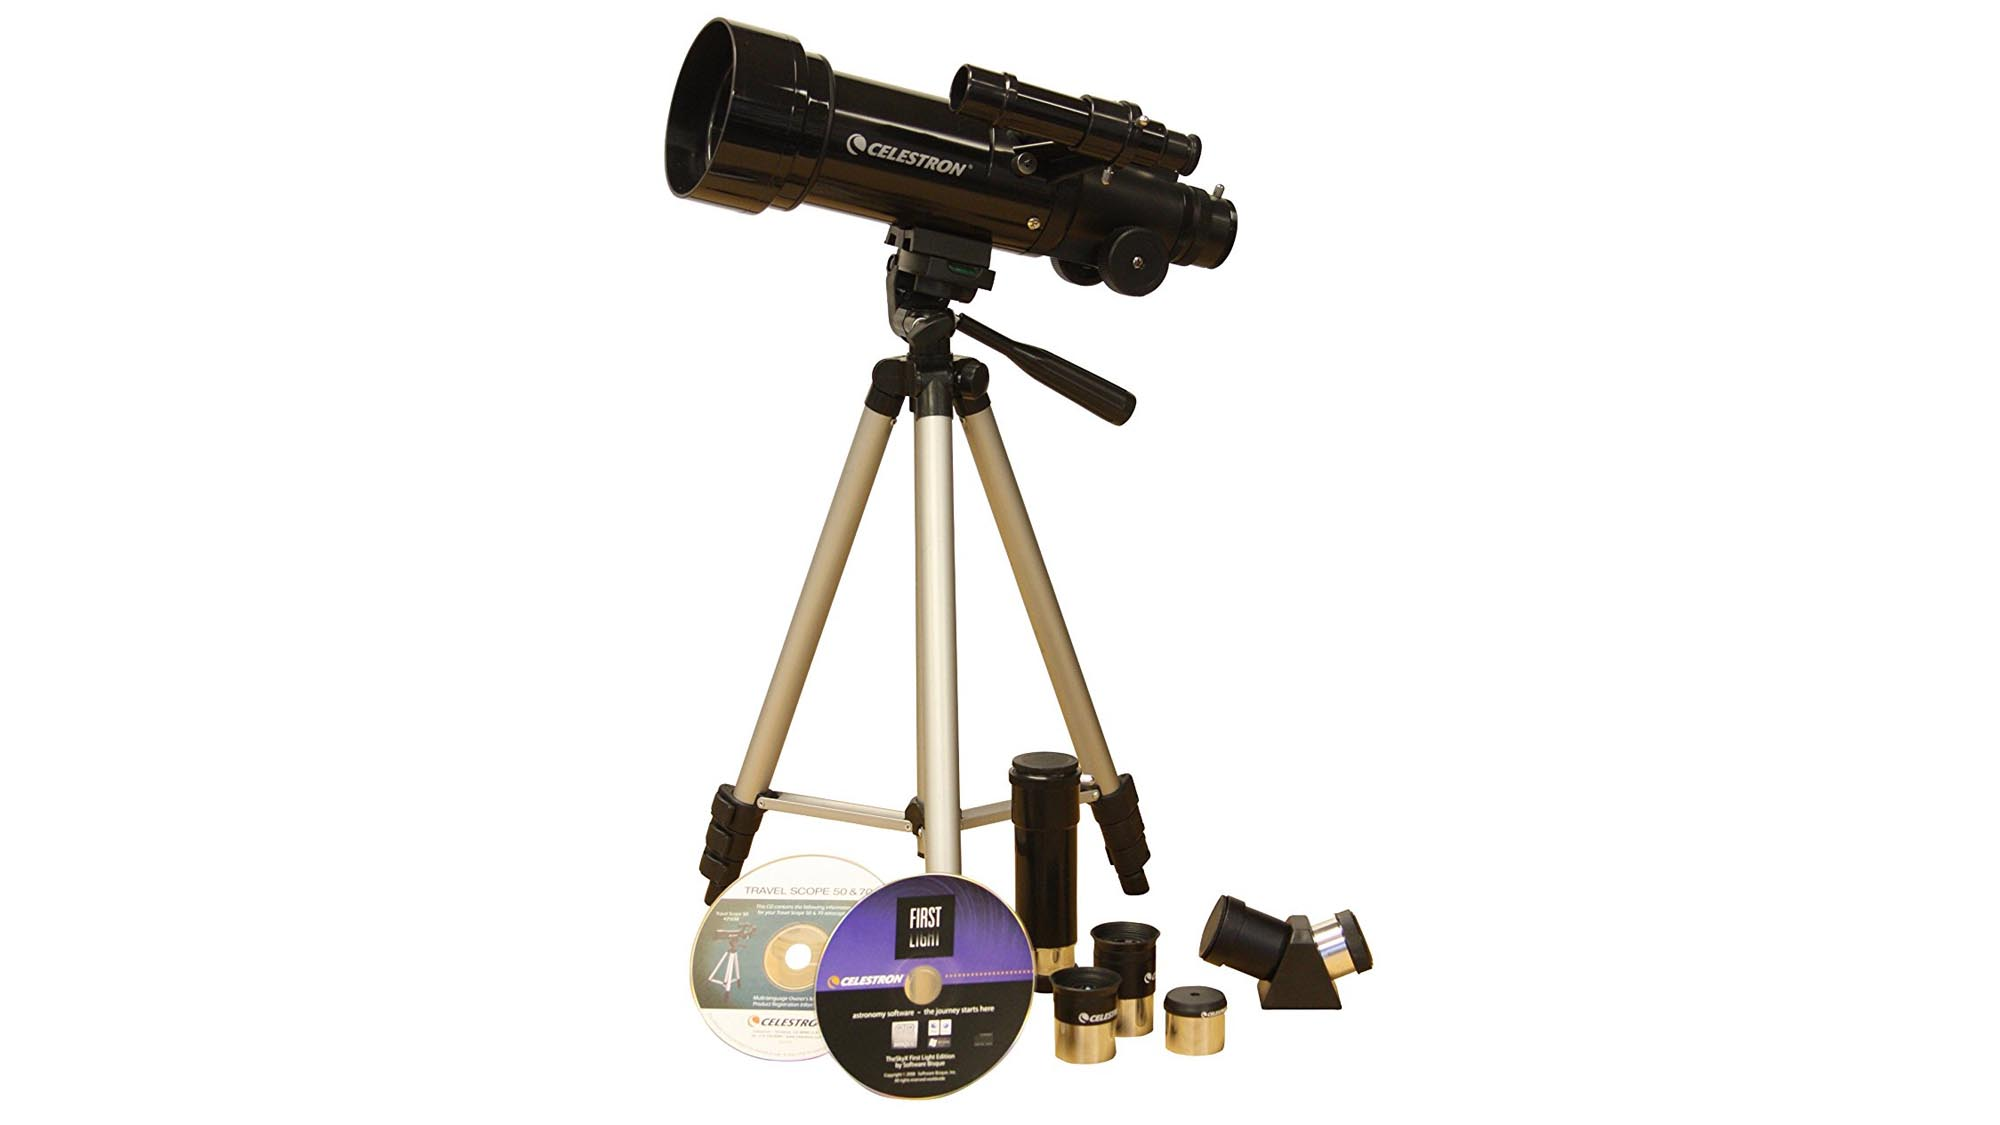 Useful tips on choosing a telescope and accessories